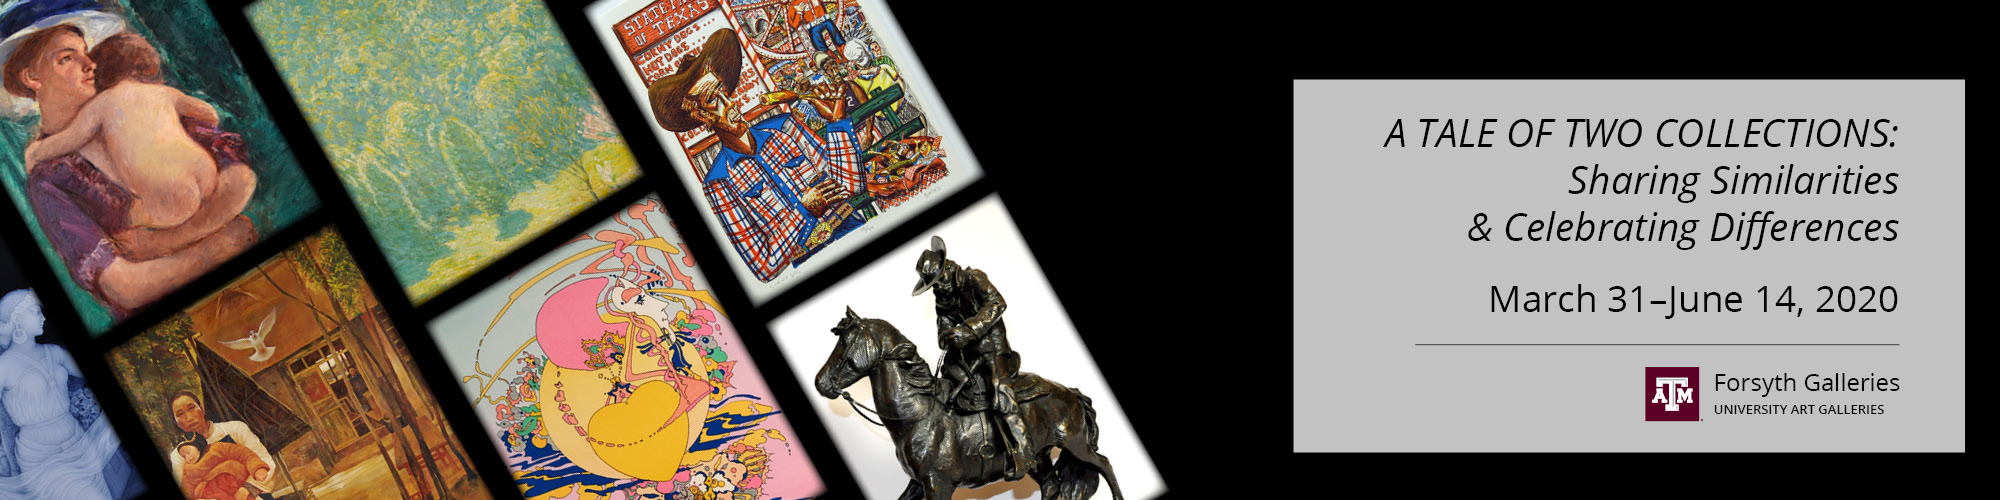 Diagonal rows of squares highlight different art pieces from the collections. One painting shows a mother holding her baby while the one below it shows a father holding a baby. The next row shows a lush landscape with an abstract painting below it. The next row shows a colorful drawing of Big Tex at the Texas State Fair while the image below it shows a sculpture of a cowboy on horseback.